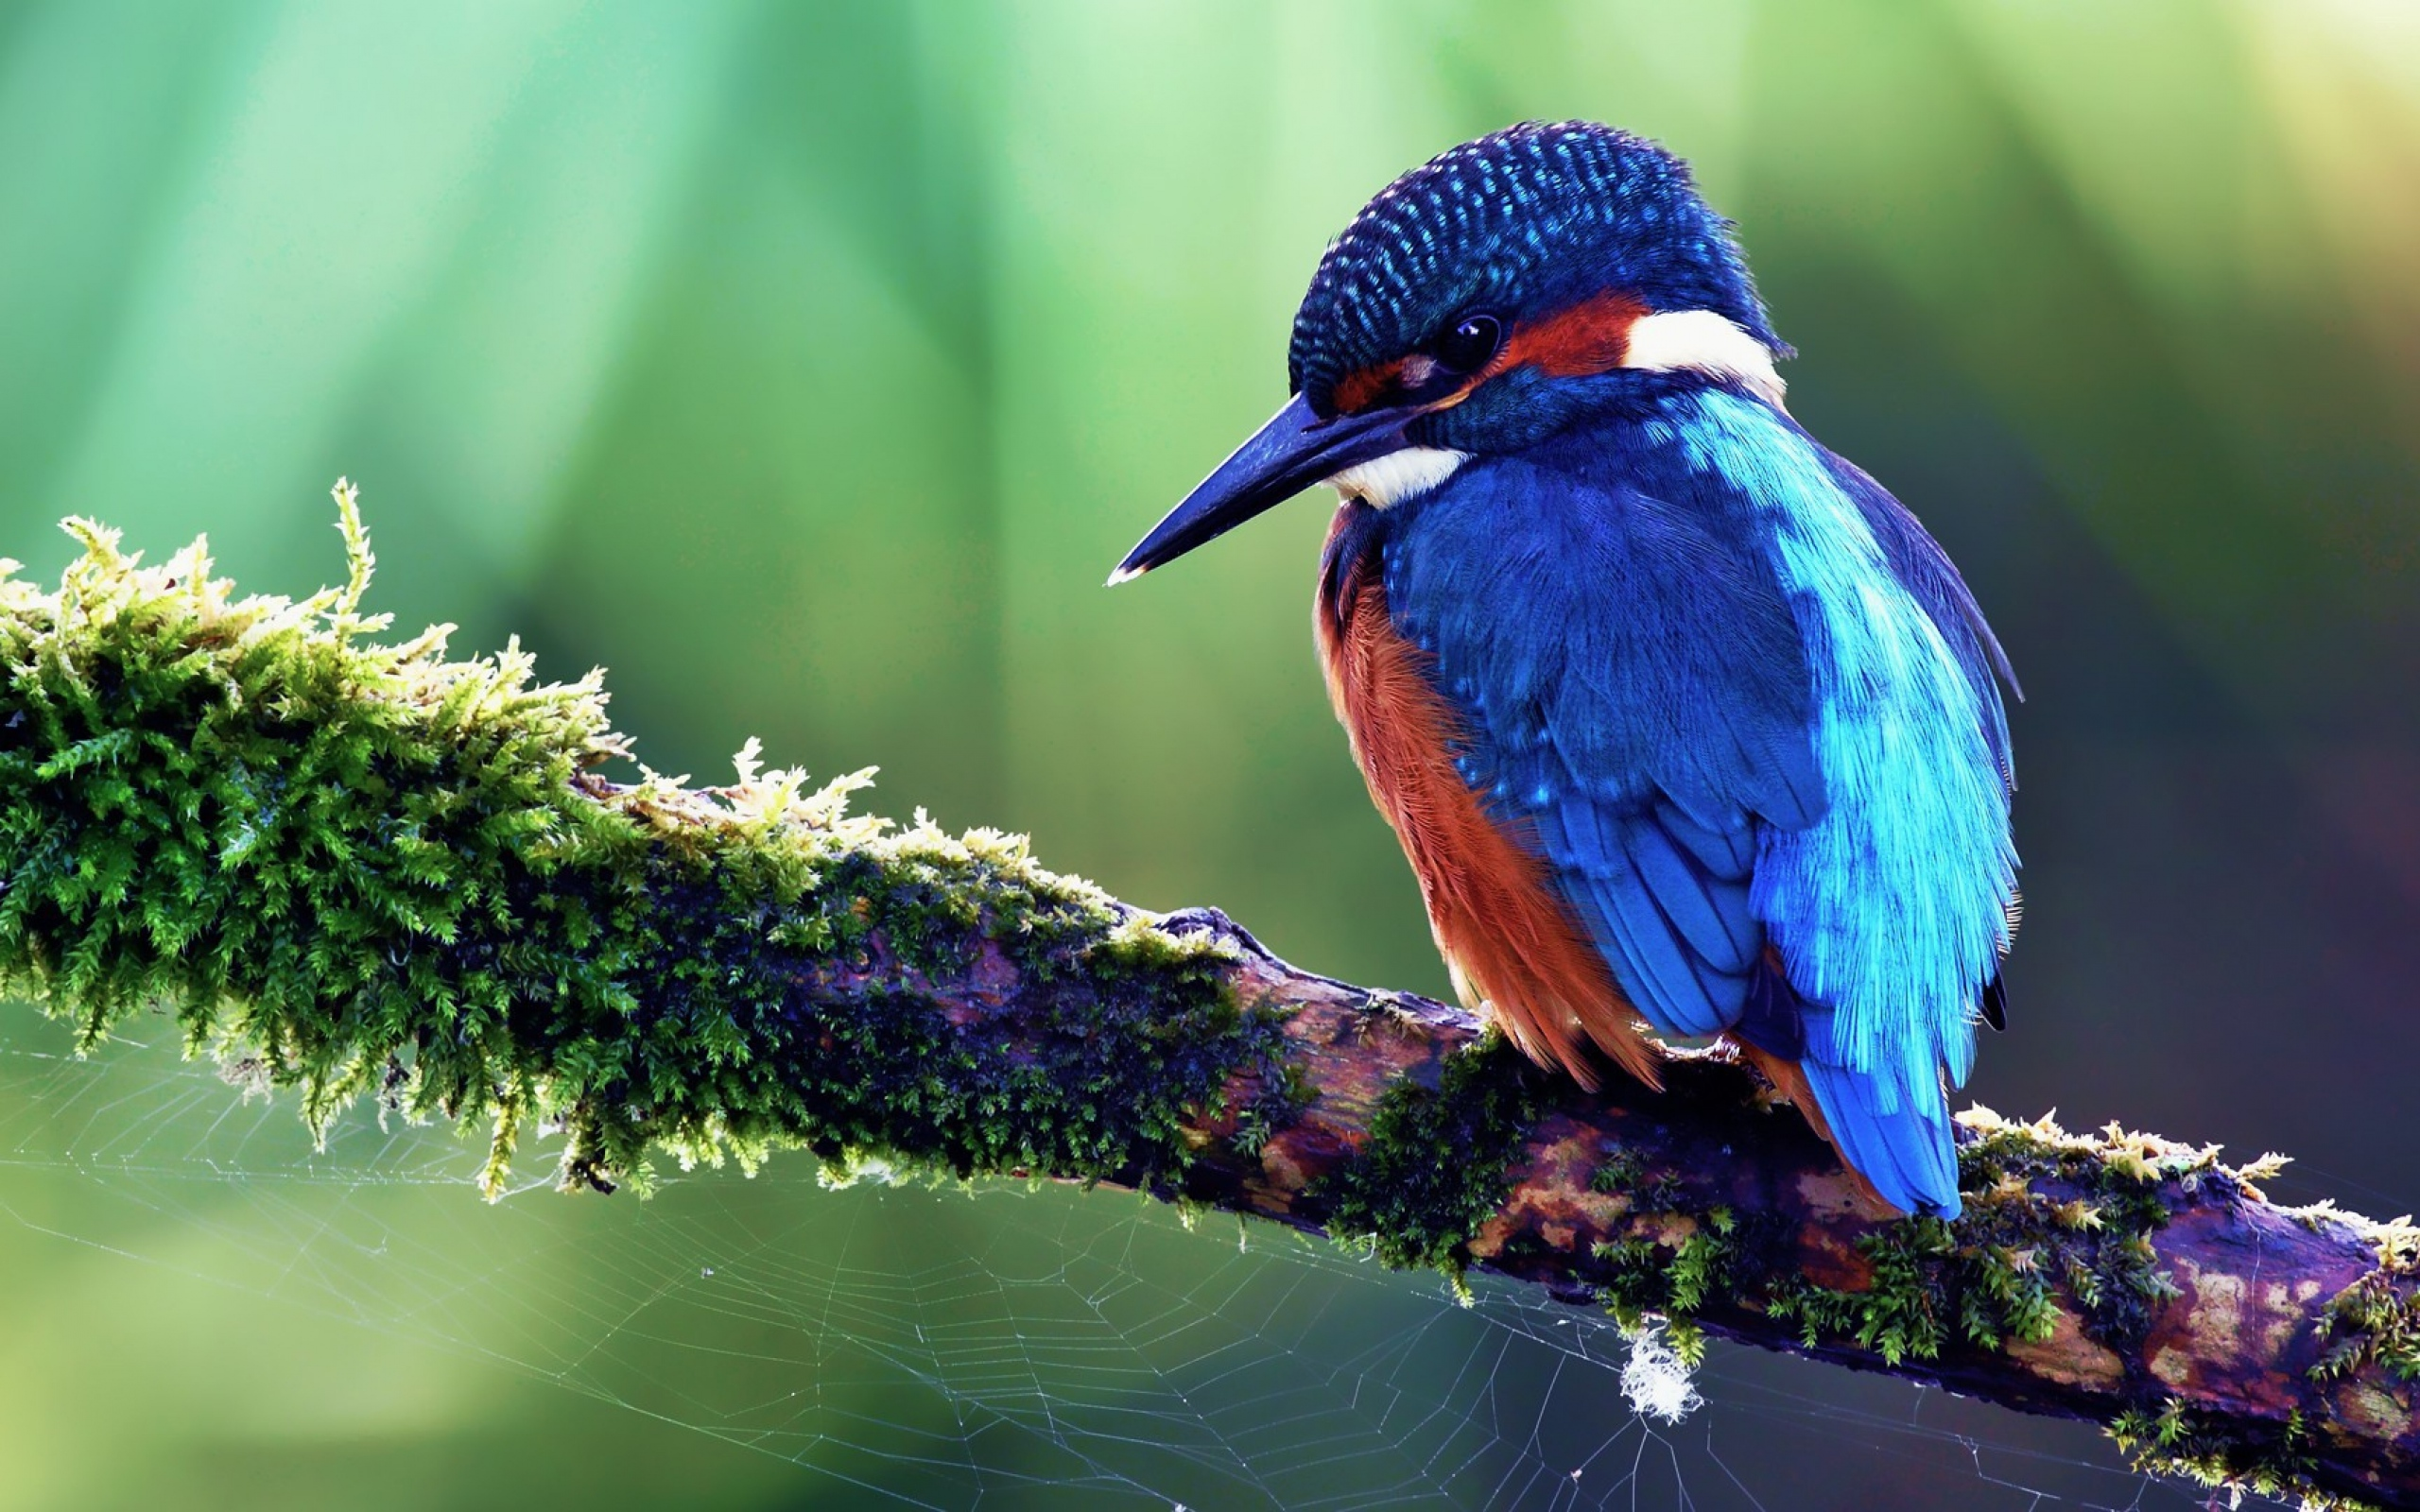 Birds wallpapers best wallpapers - Hd images of birds of paradise ...